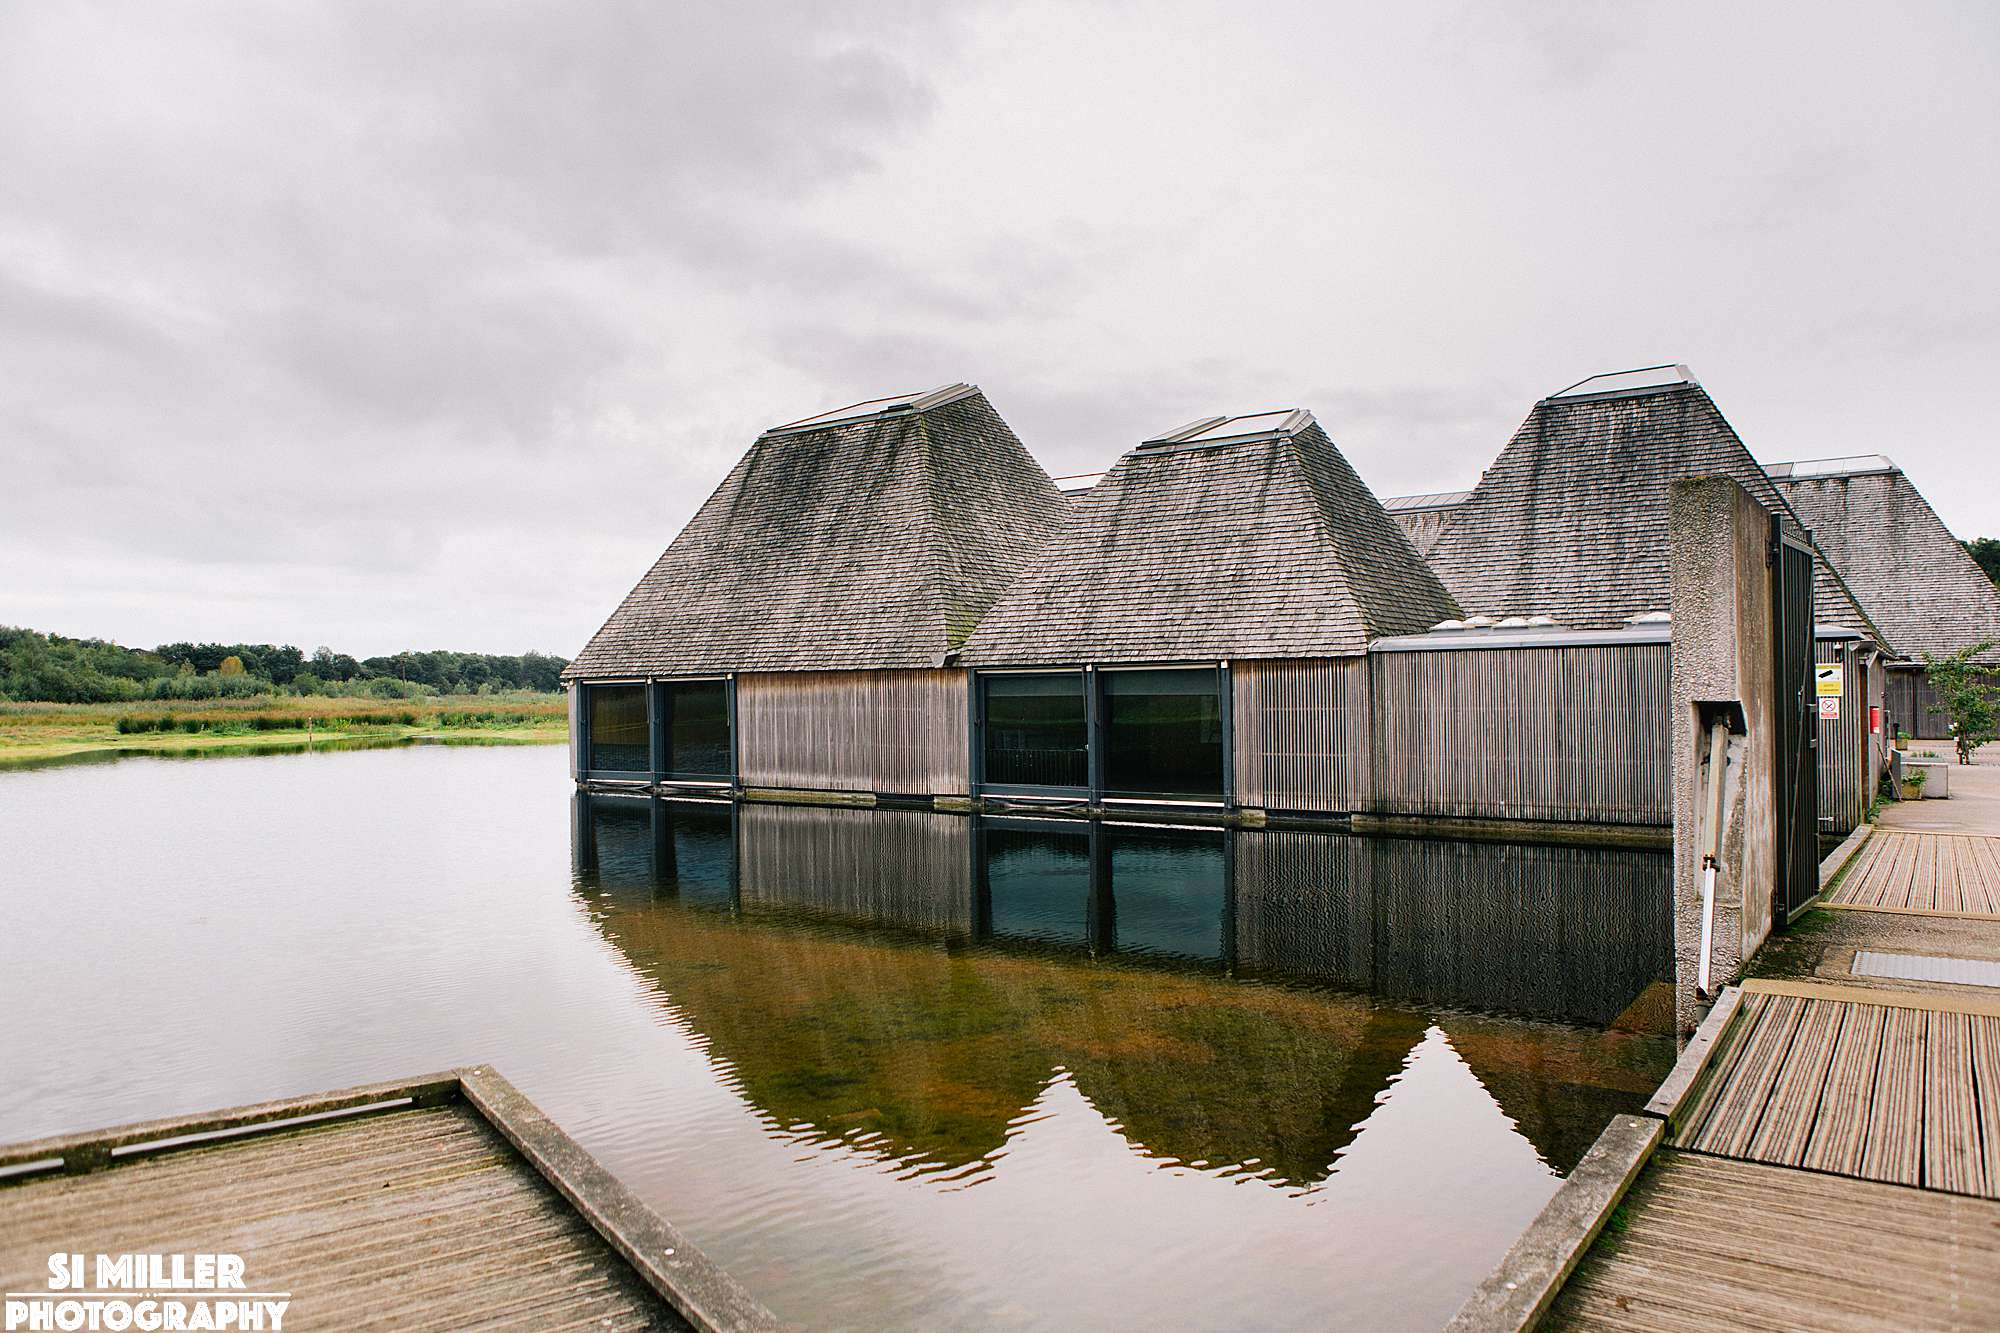 Meadow lake suite with reflection in water